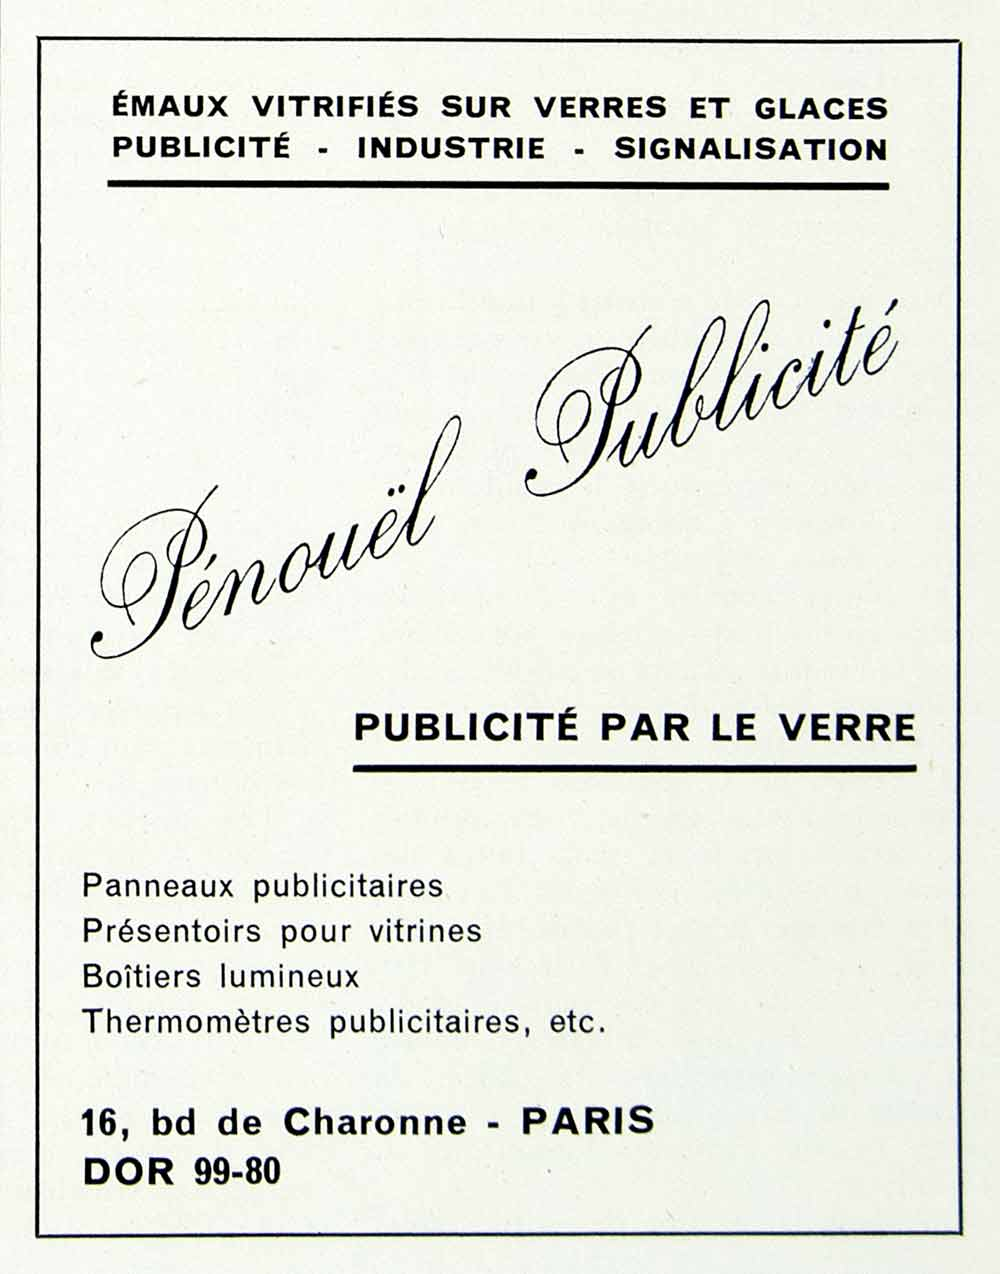 1957 Ad Penouel Publicite Illuminated Advertising French Window Display VEN1